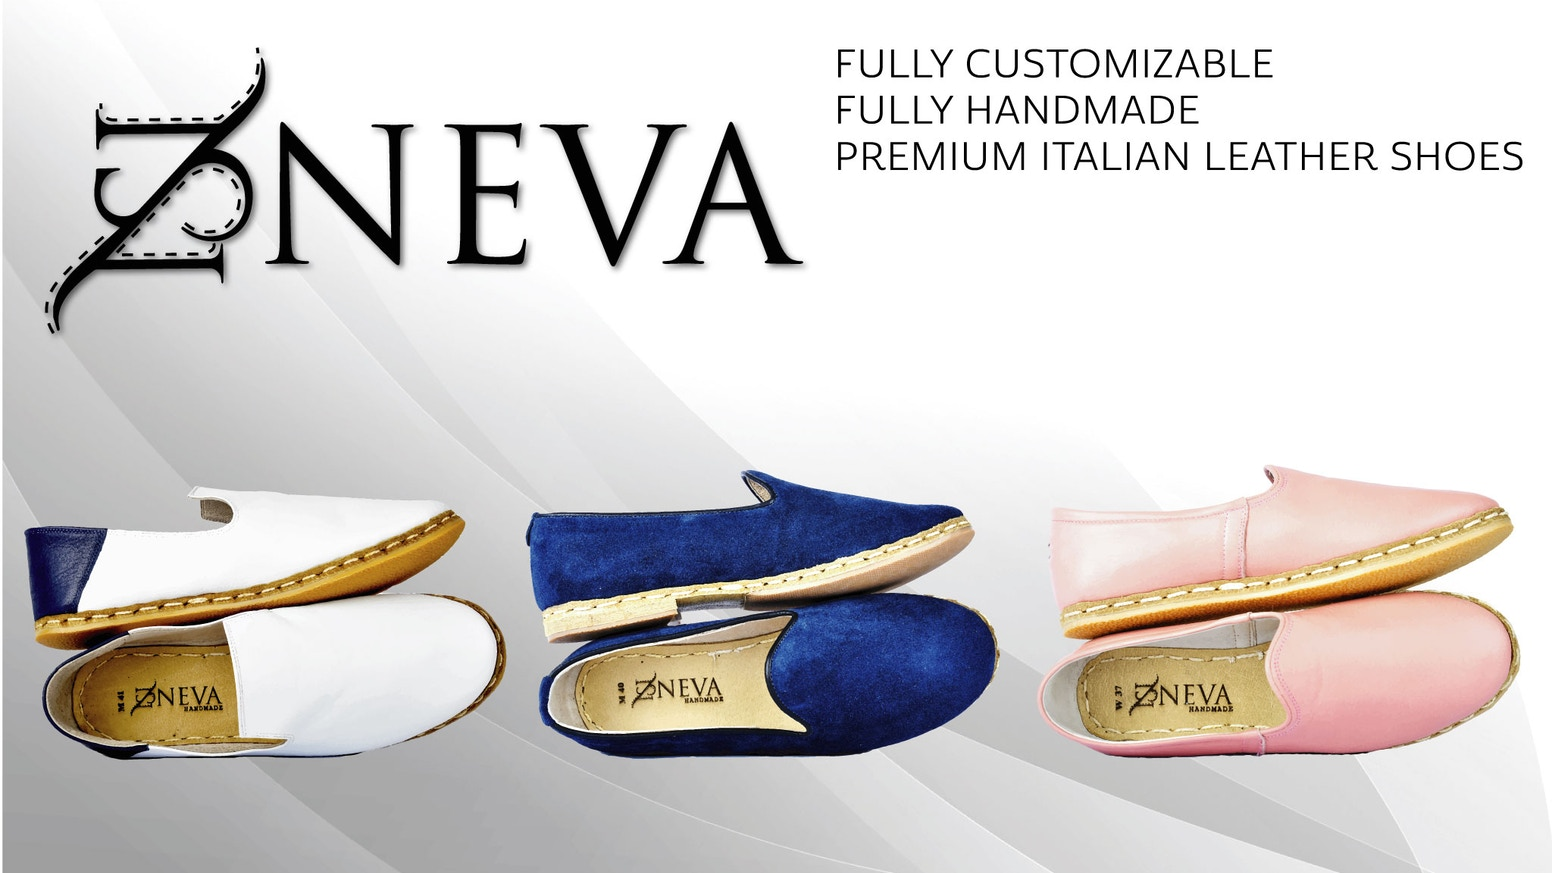 Neva Shoes,  the world's first fully customizable, handmade leather shoes inspired by espadrille and yemeni